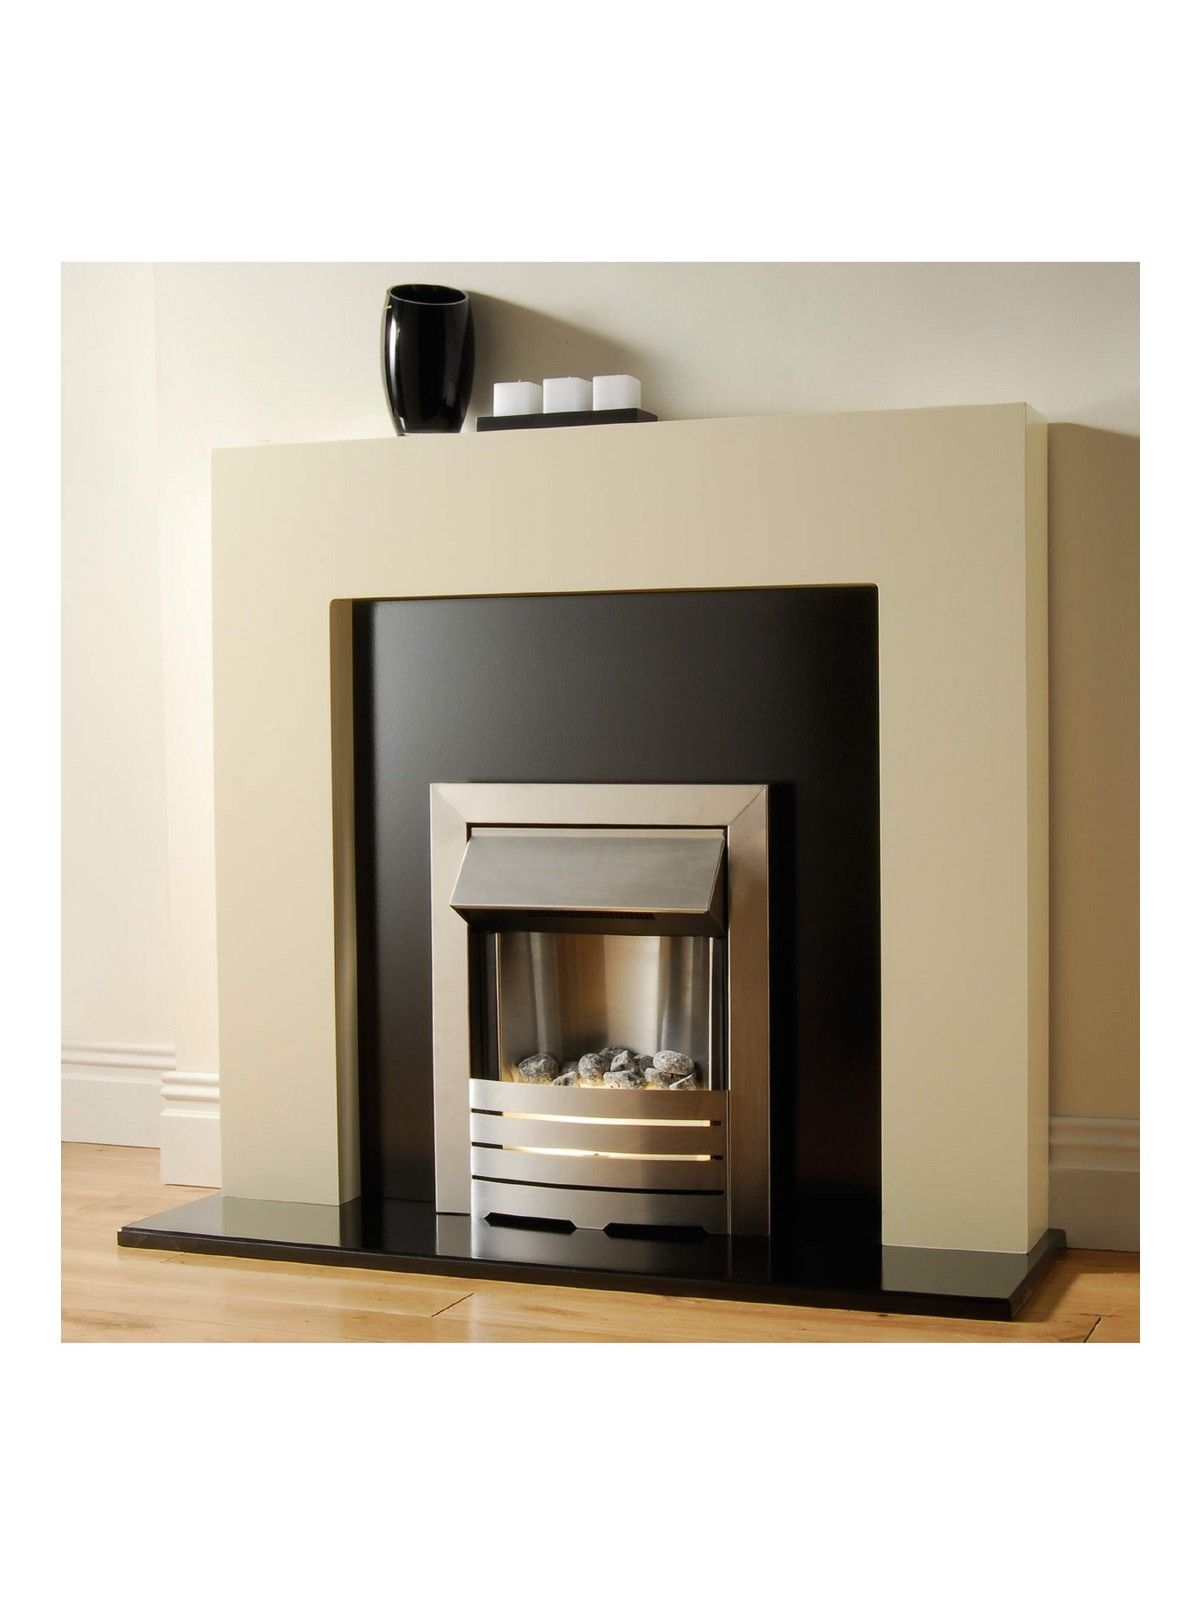 adam fire surrounds milan electric suite fireplace in ivory very